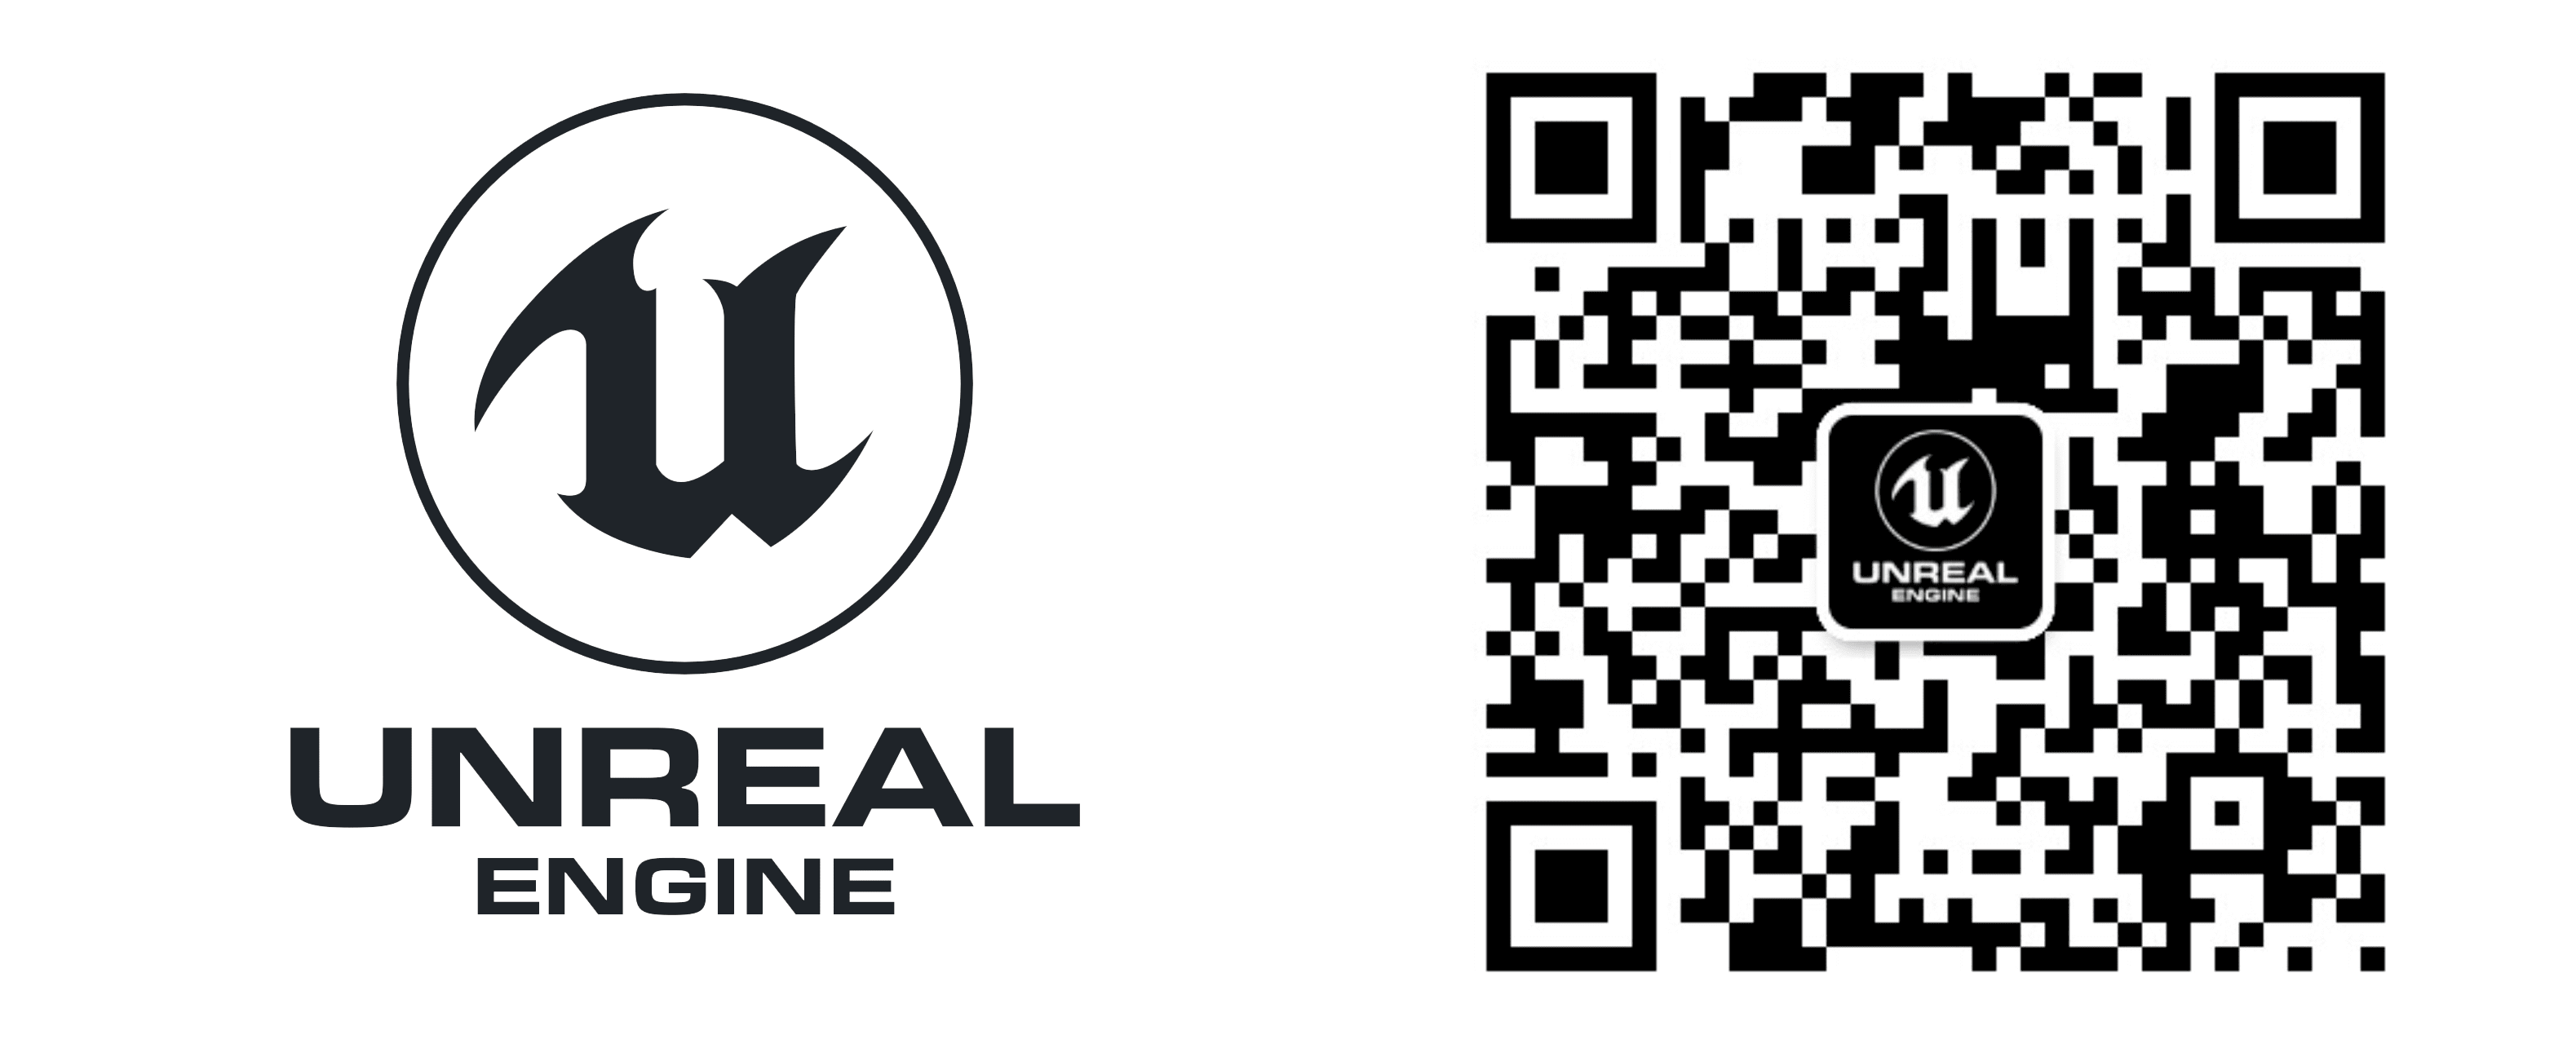 wechat-QR-code-and-logo.png